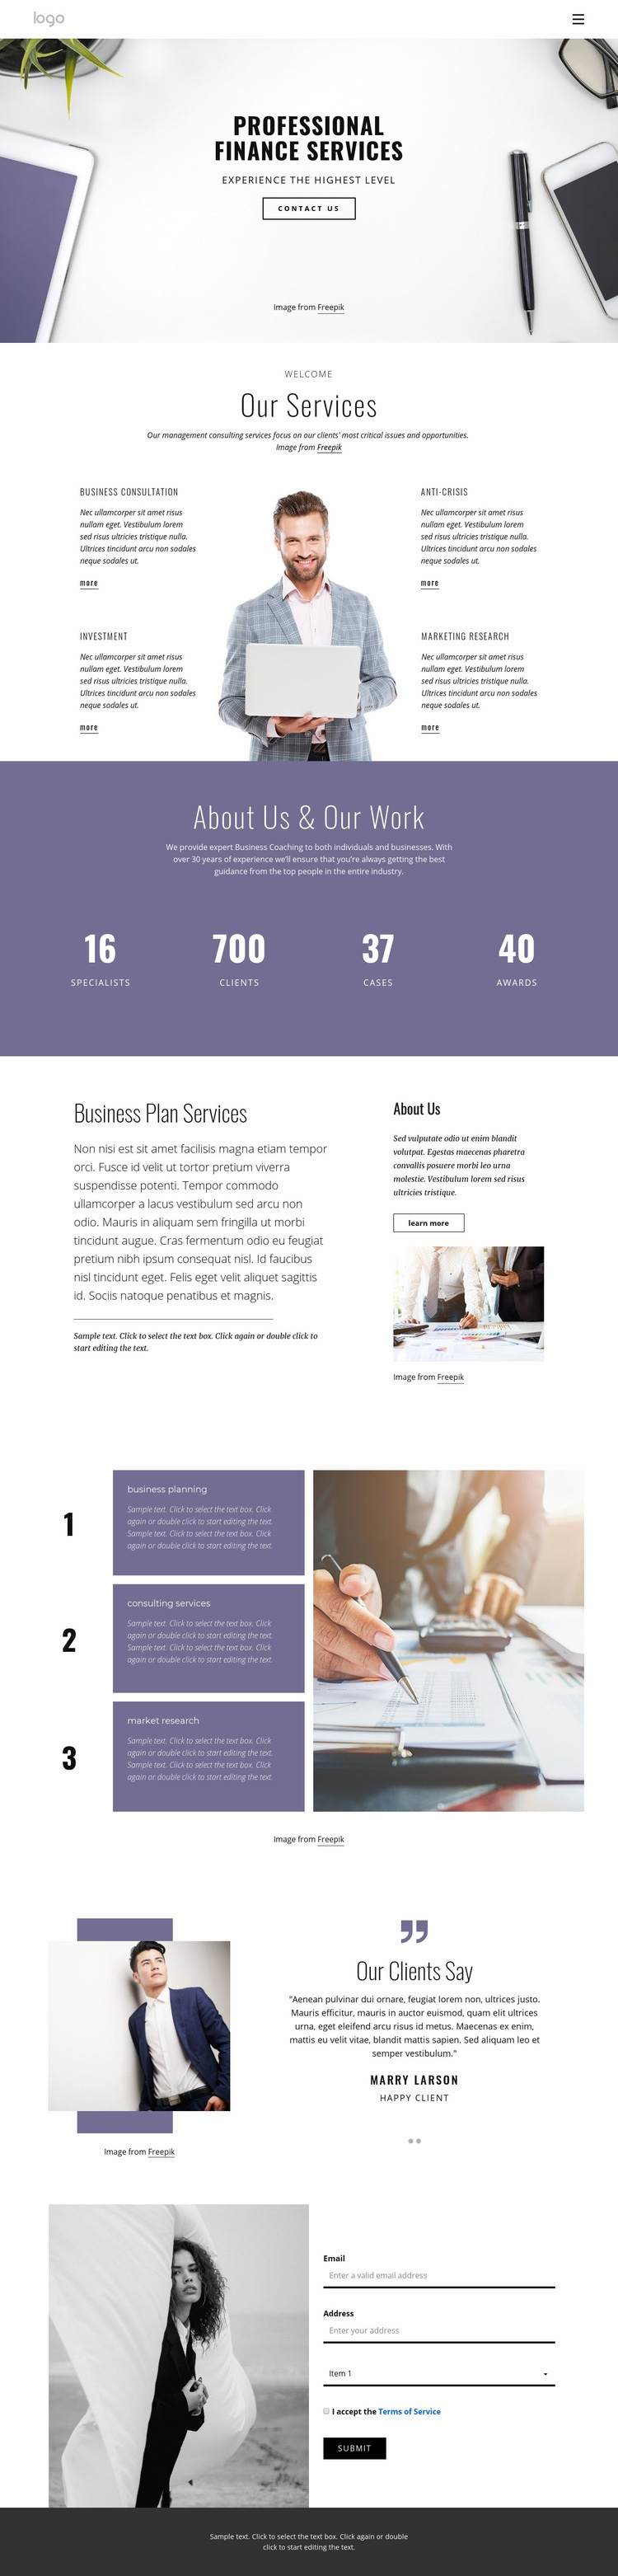 Professional finance services Web Page Design